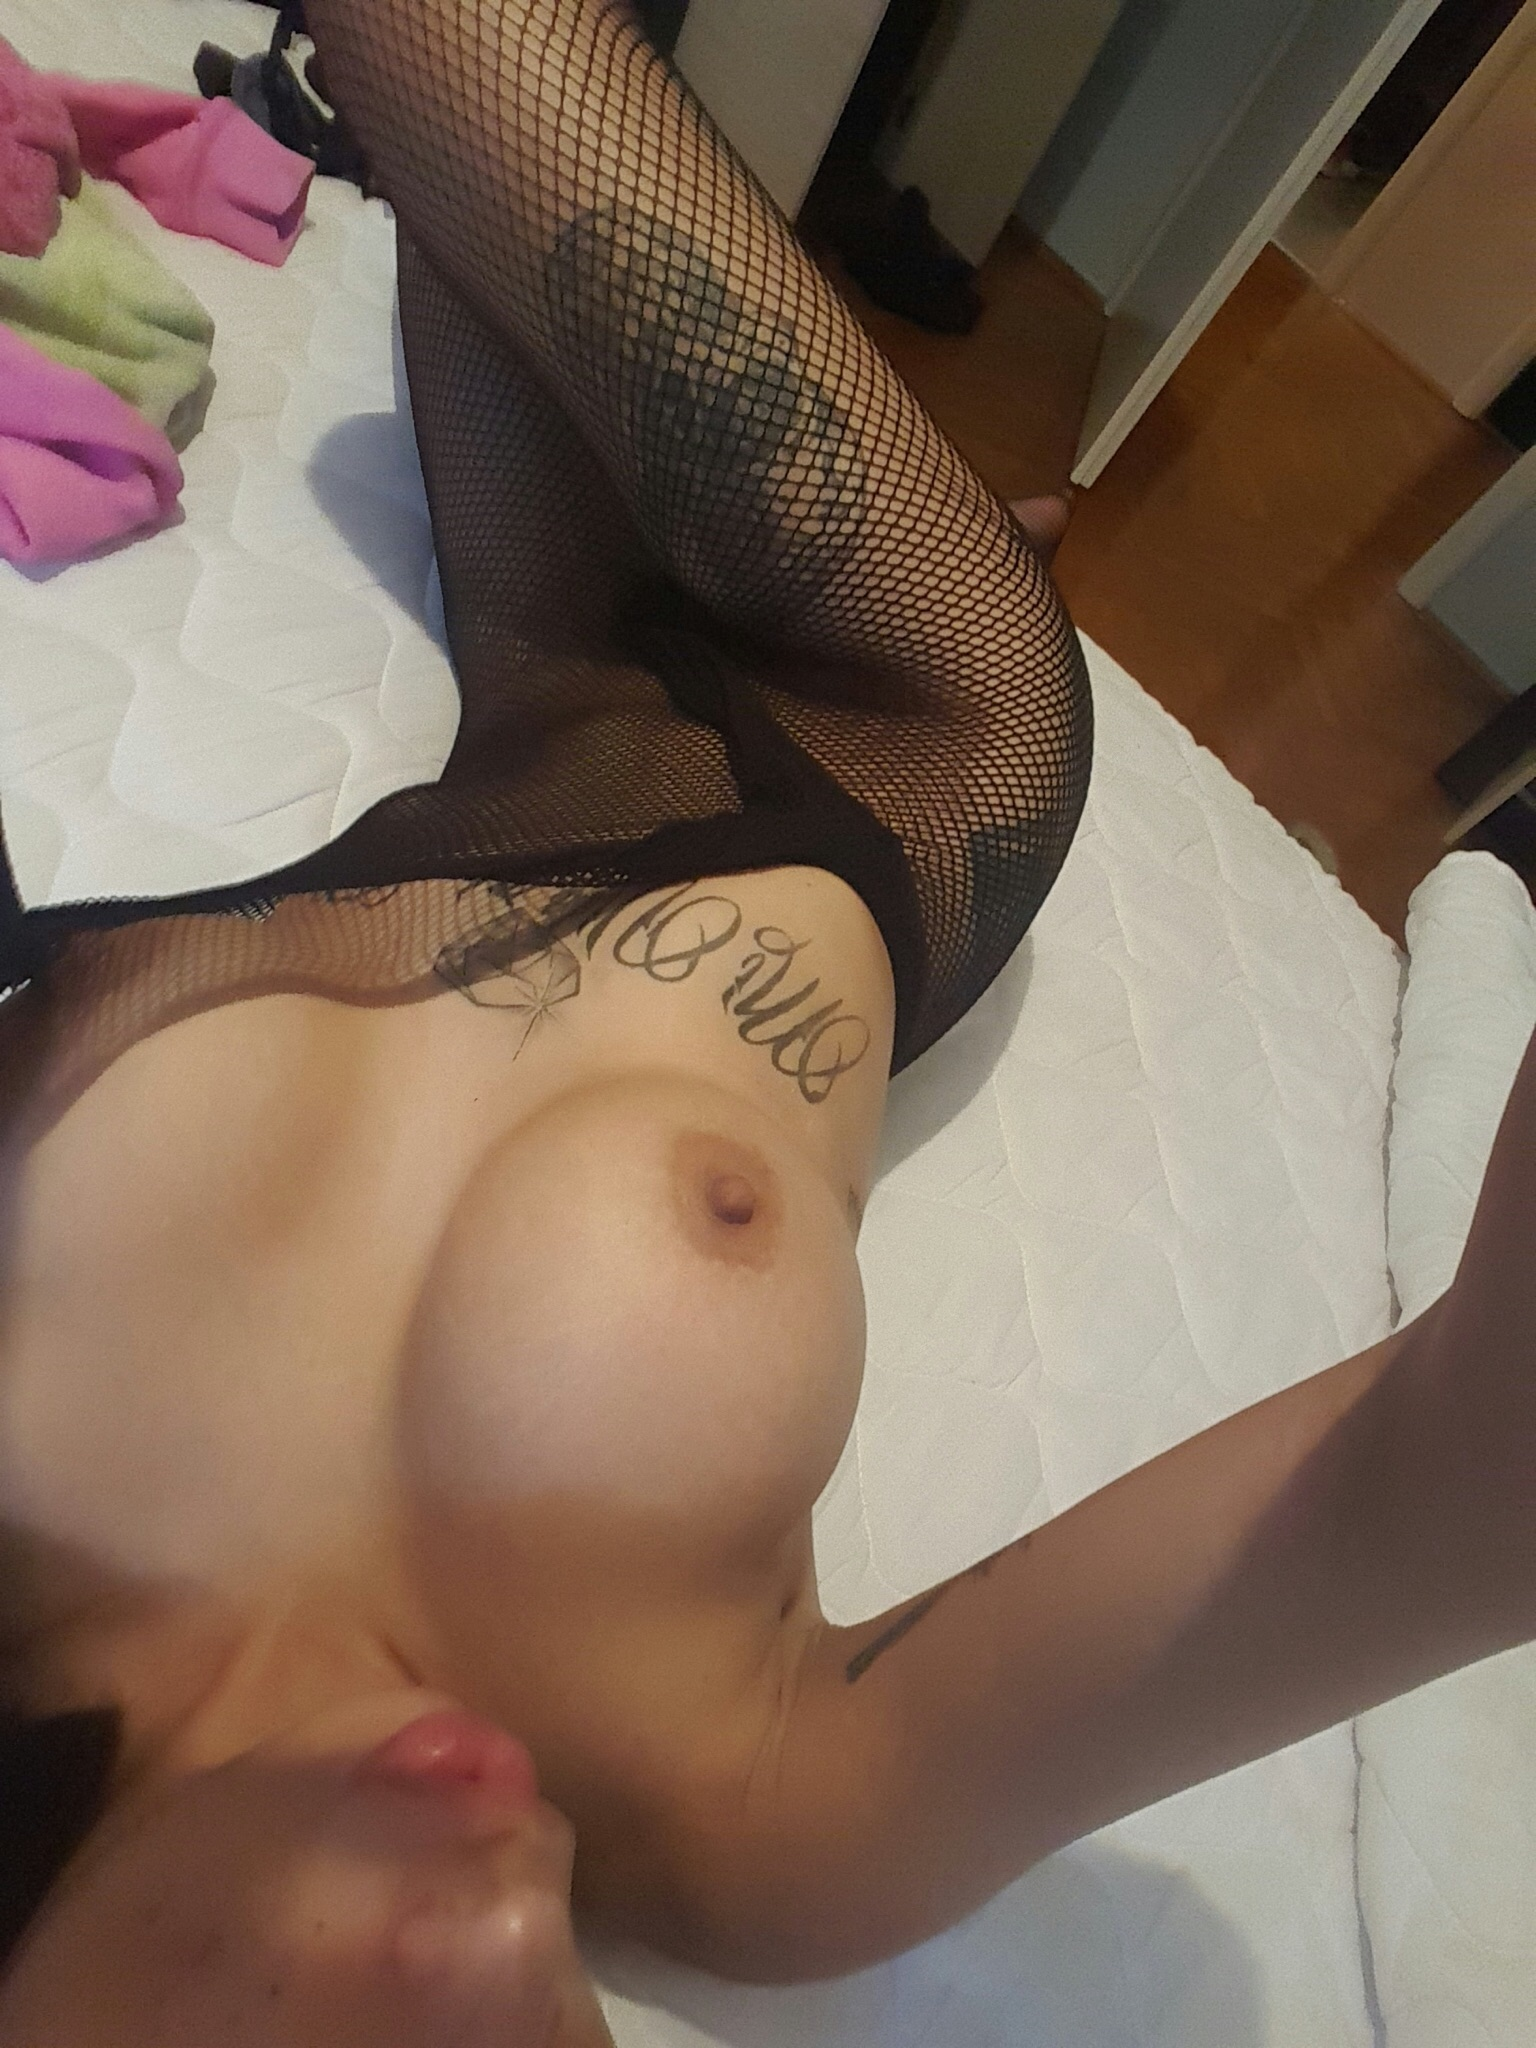 bordel slagelse sex shop herning